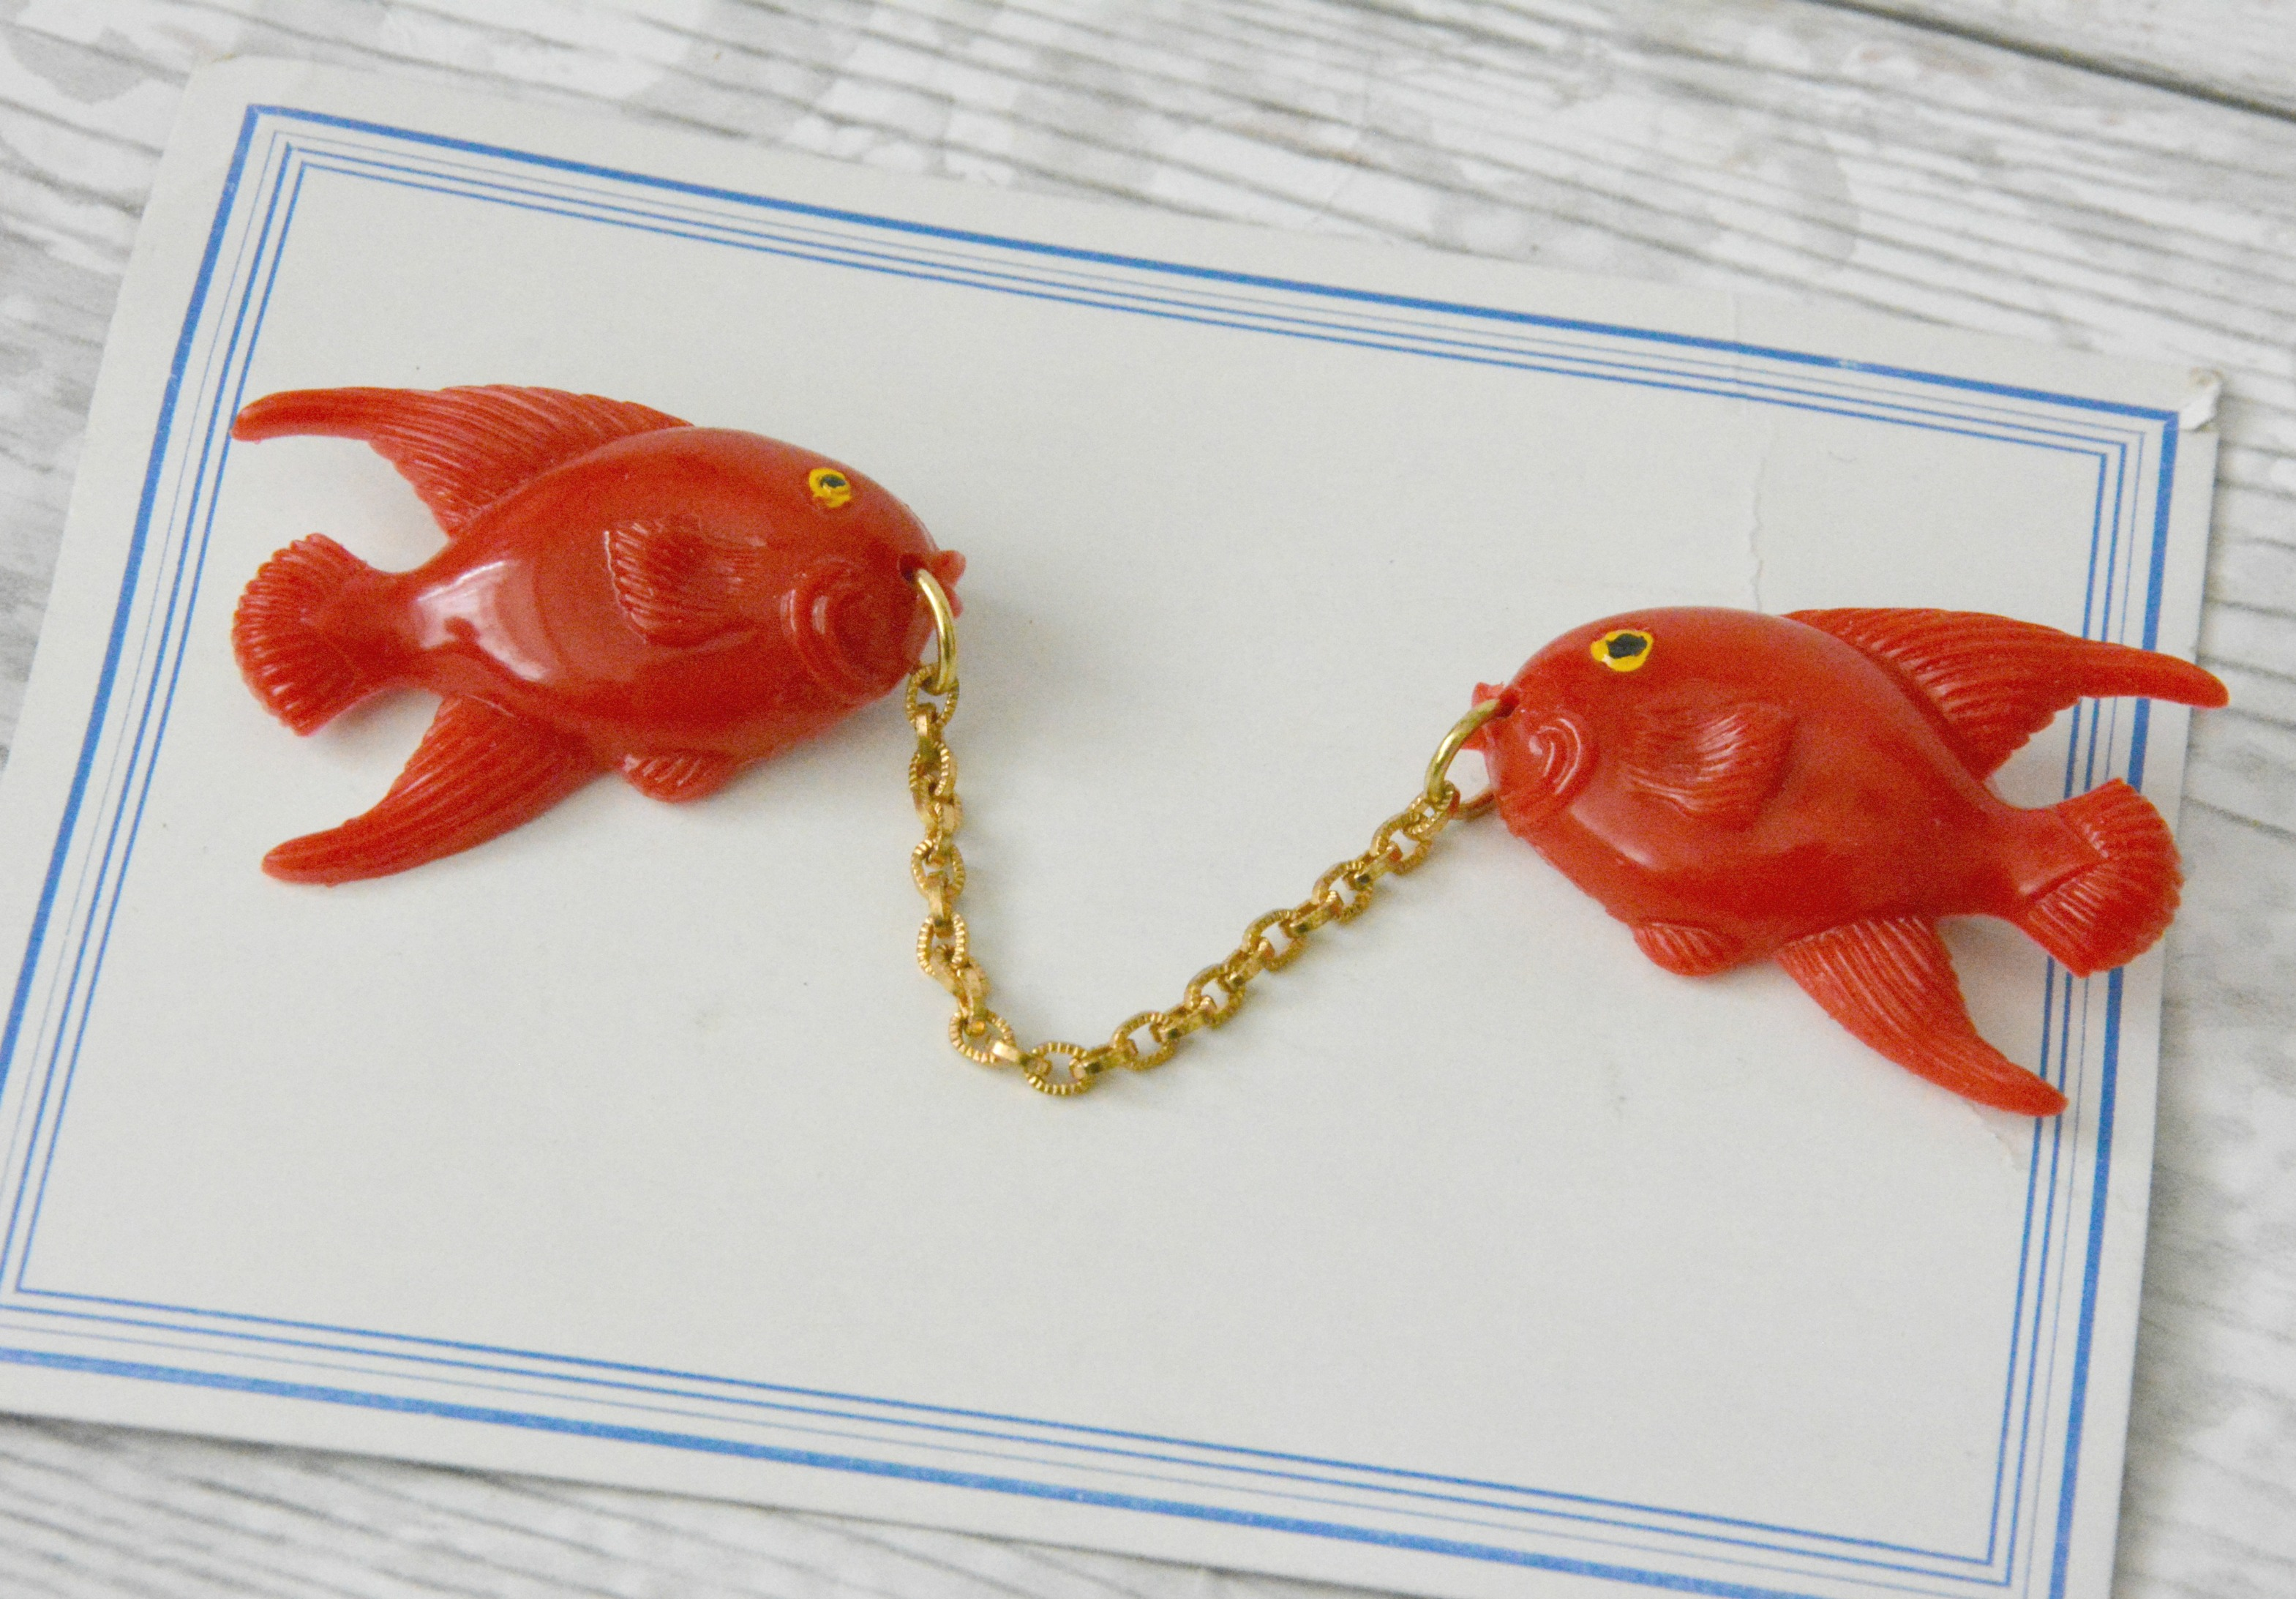 Fish Dress Clips on Card